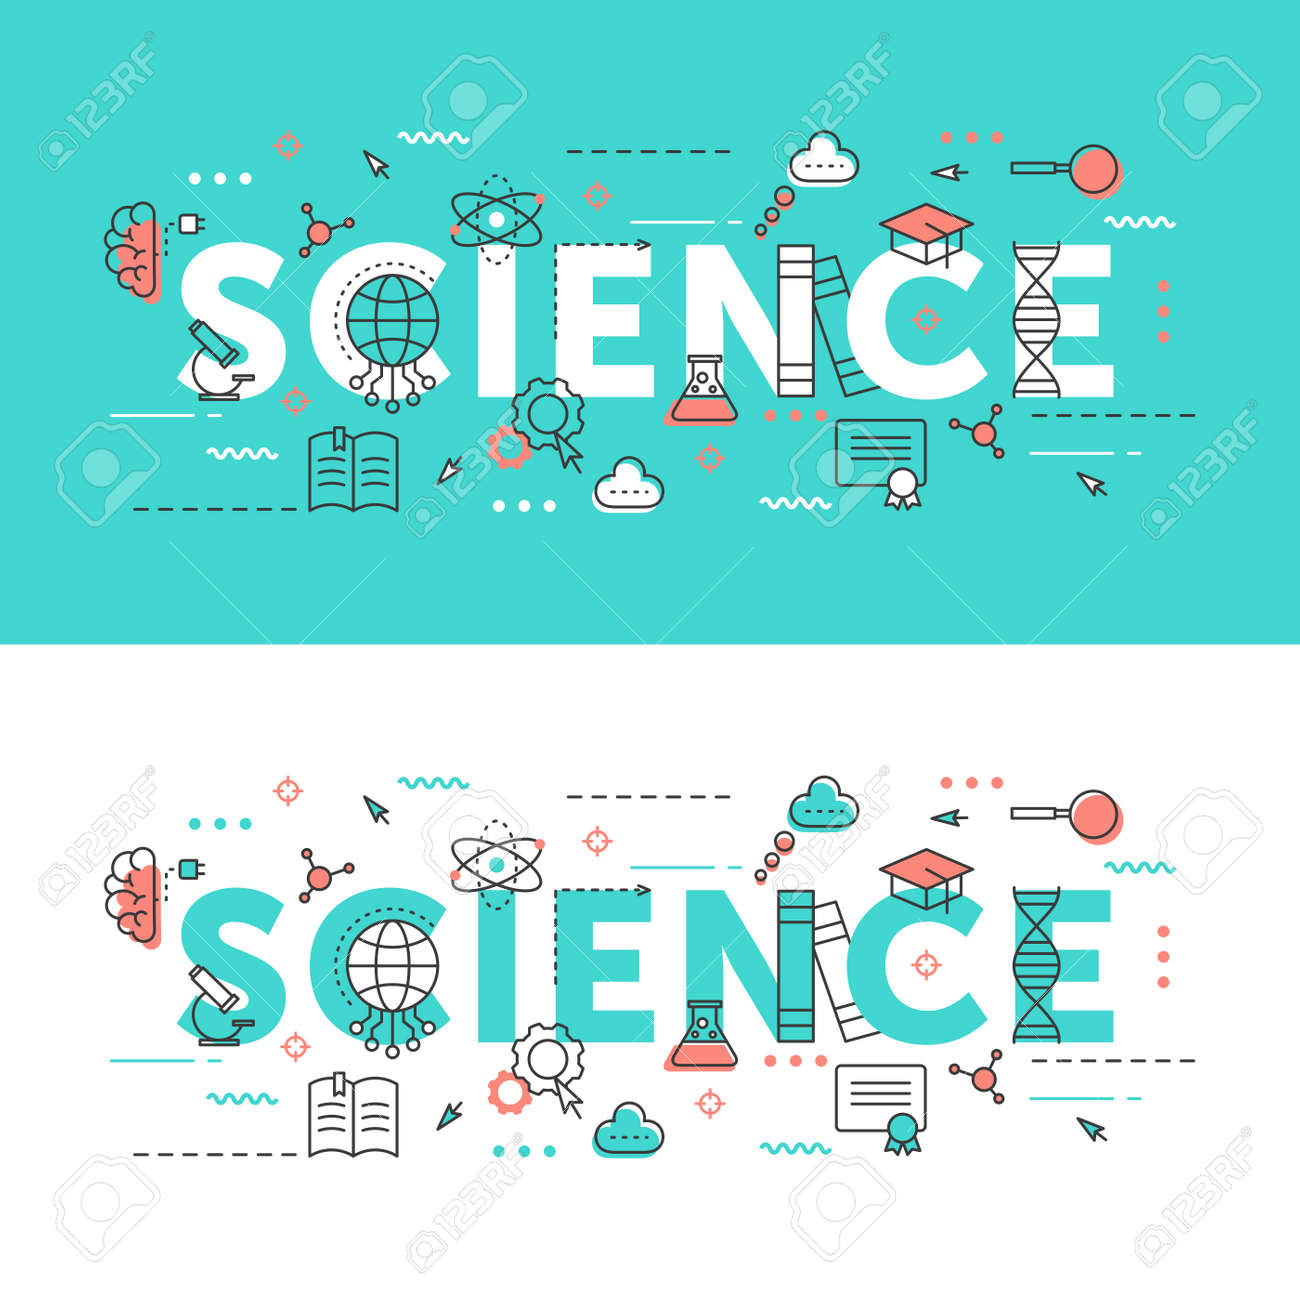 Science word thin line vector illustration set. Flat infographic website design collection with scientific research educational symbols, school education elements - 156310105